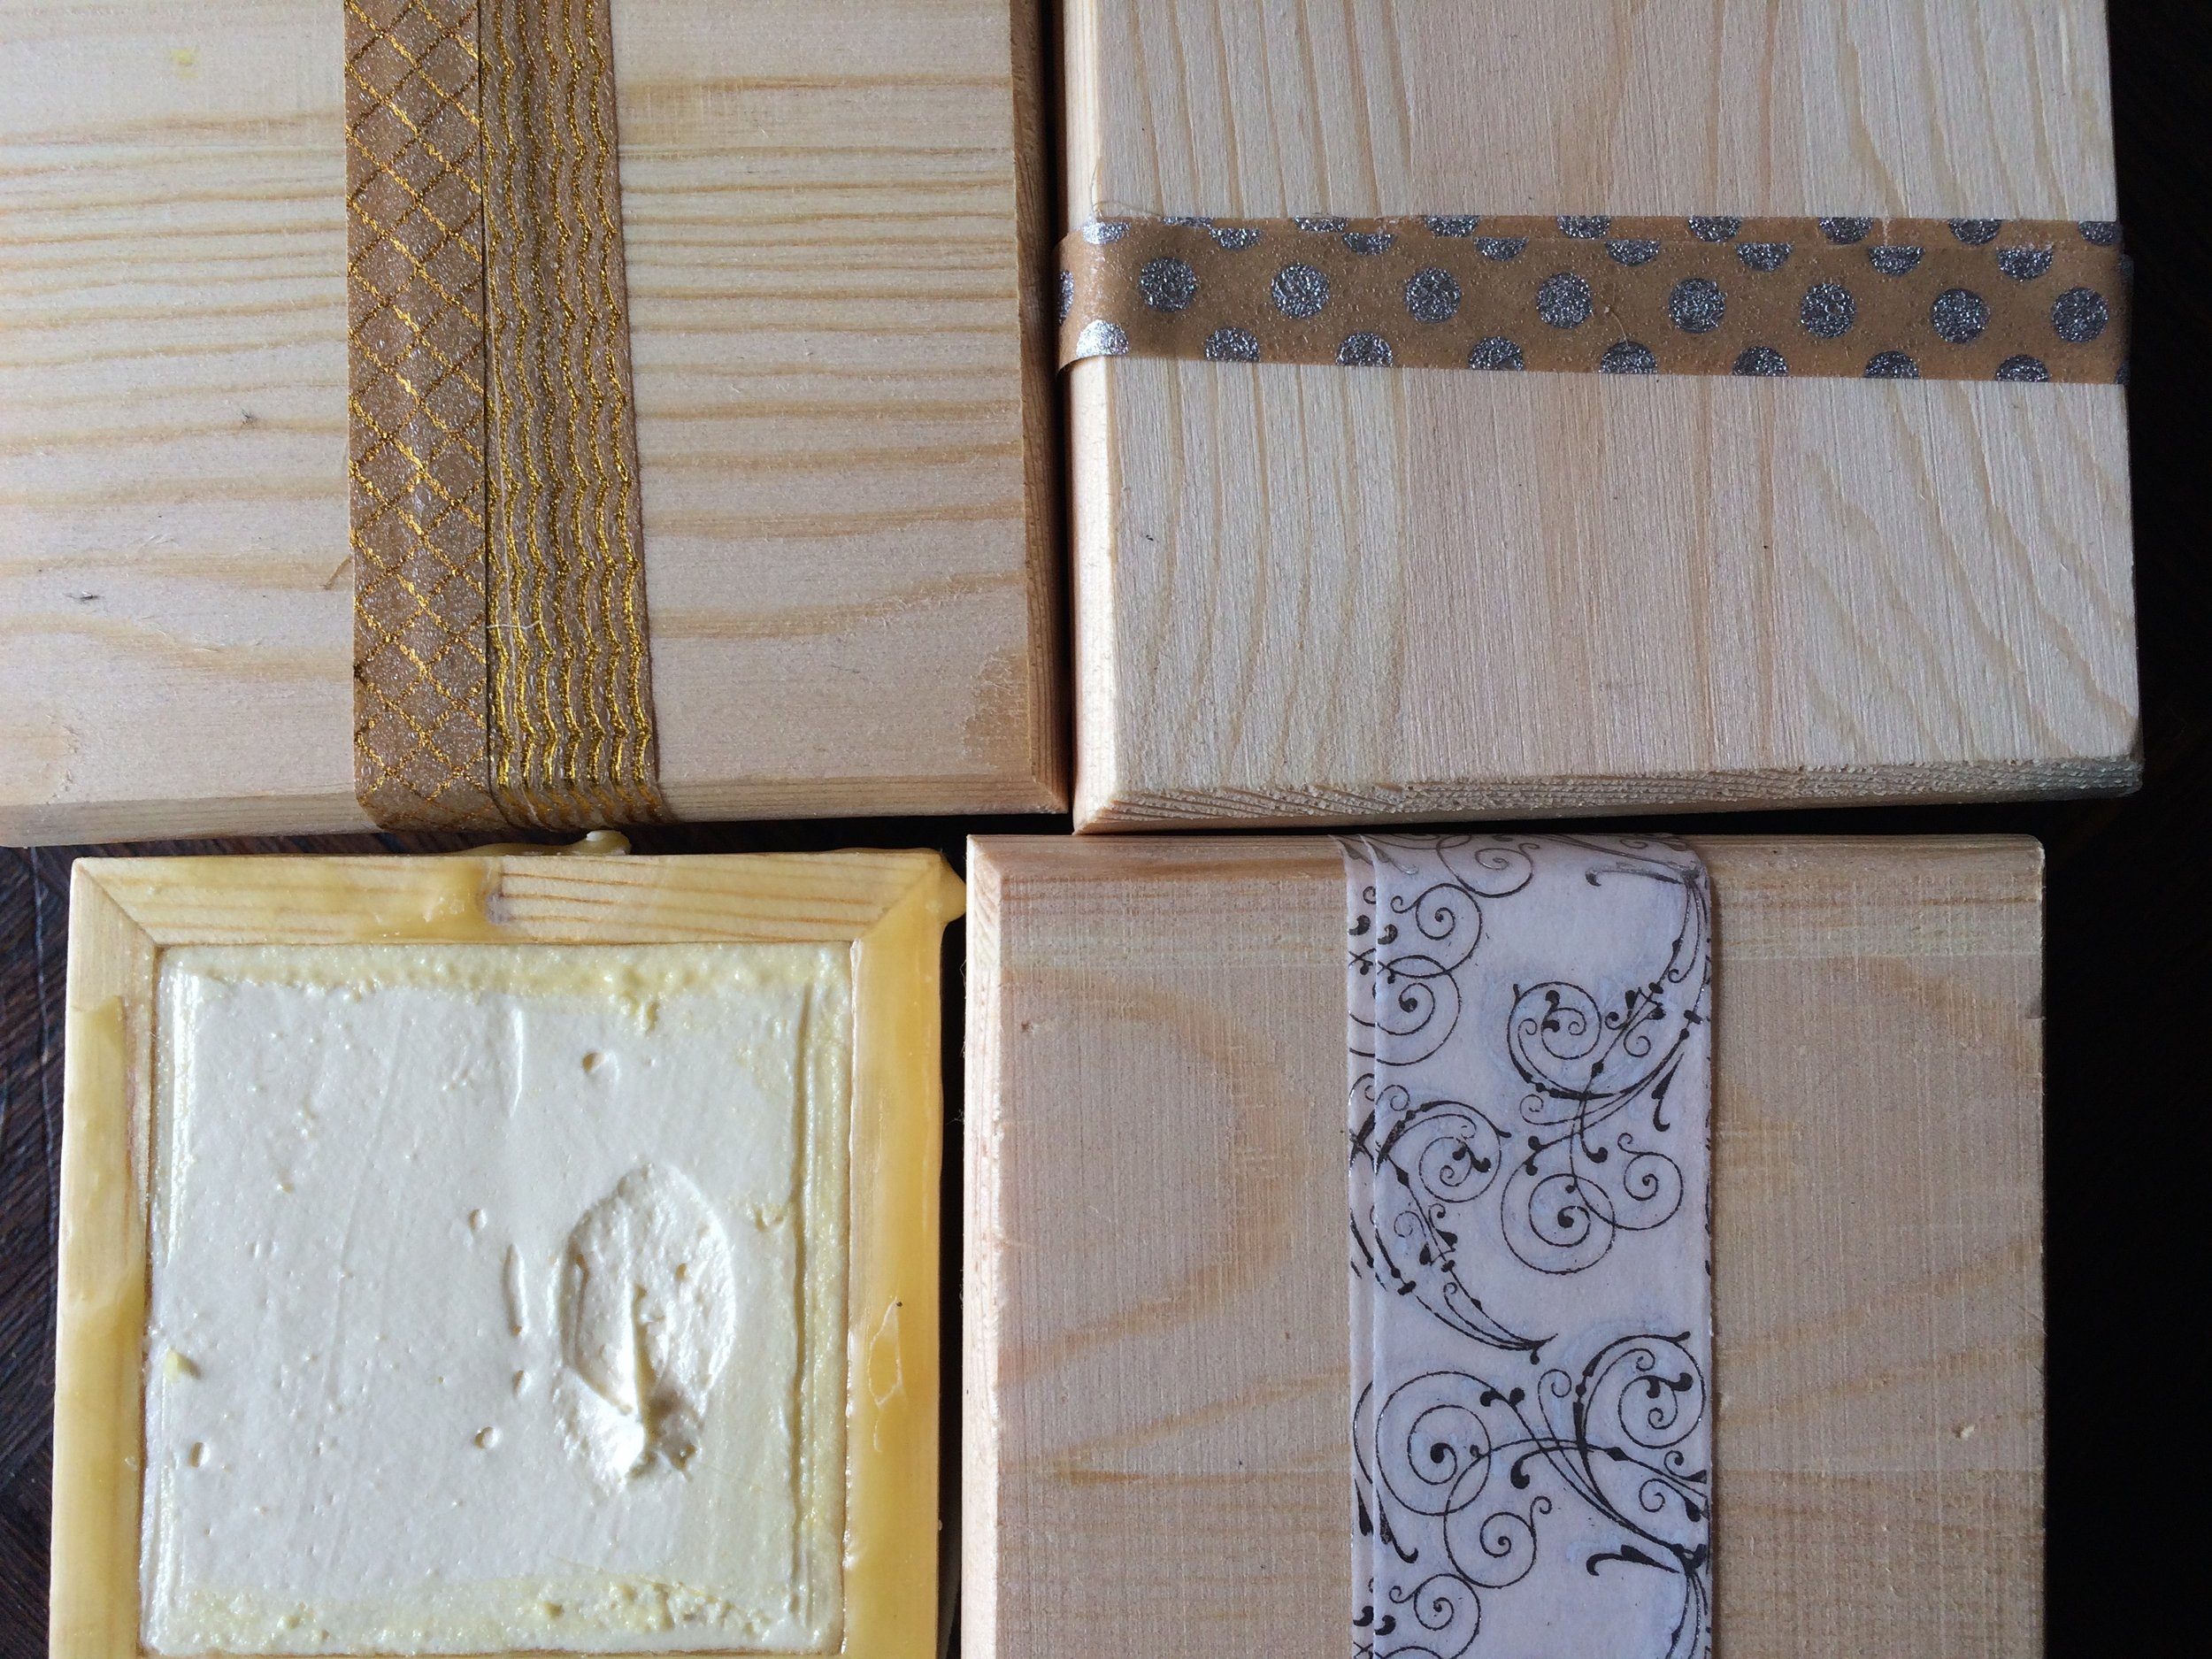 RAW HONEY SKIN BALM in wooden boxes lined in beeswax